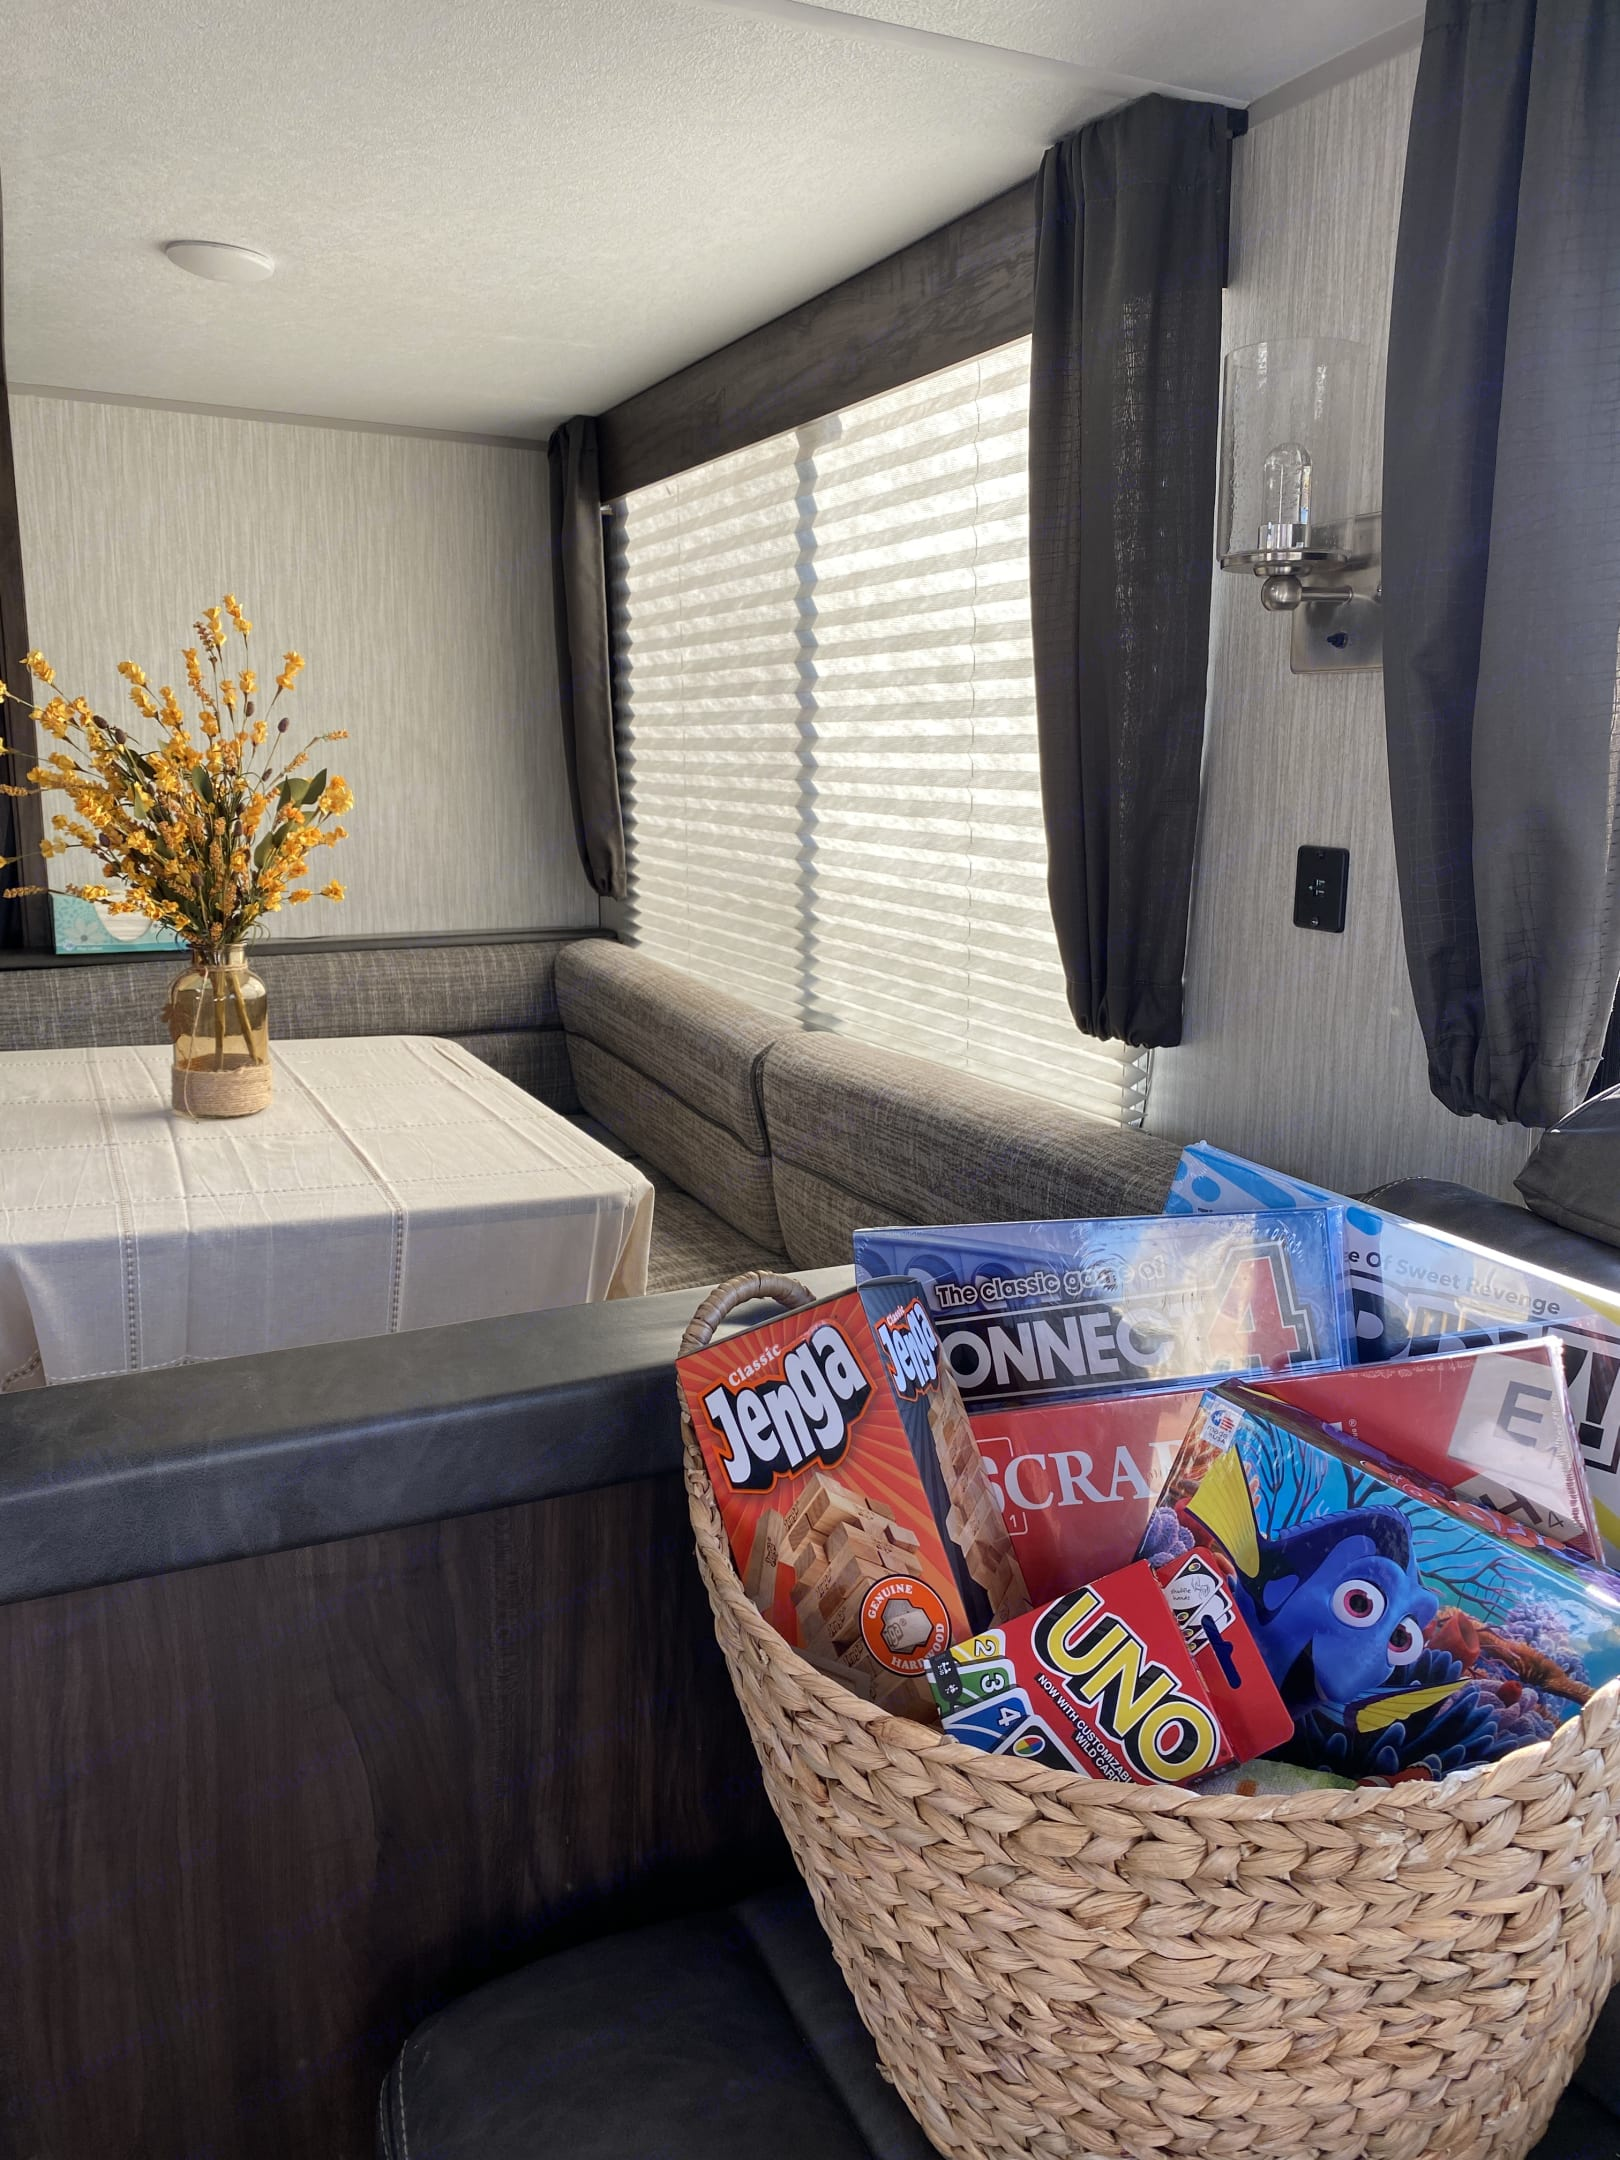 We stock our camper with fun family games just in case you are needing some down time after your adventure. . Forest River Cherokee 2019